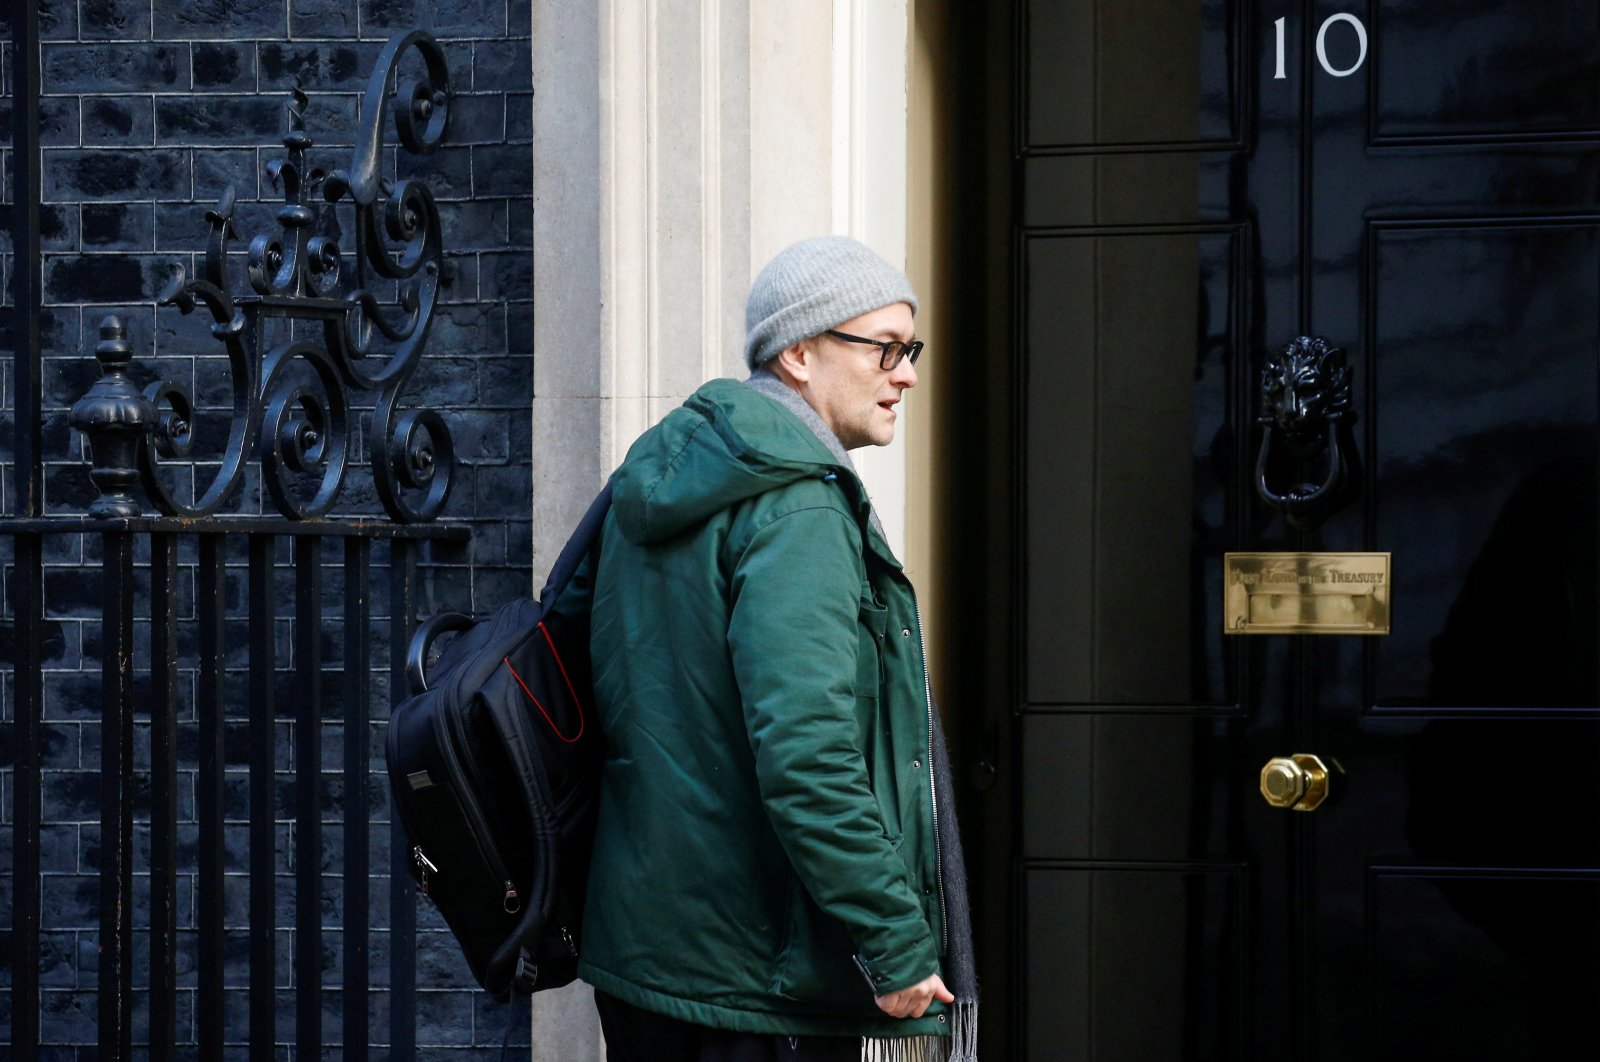 Dominic Cummings, special adviser to British Prime Minister Boris Johnson arrives for a cabinet meeting to address the government's response to the global COVID-19 coronavirus outbreak, at Downing Street in London, Britain March 12, 2020. (REUTERS Photo)